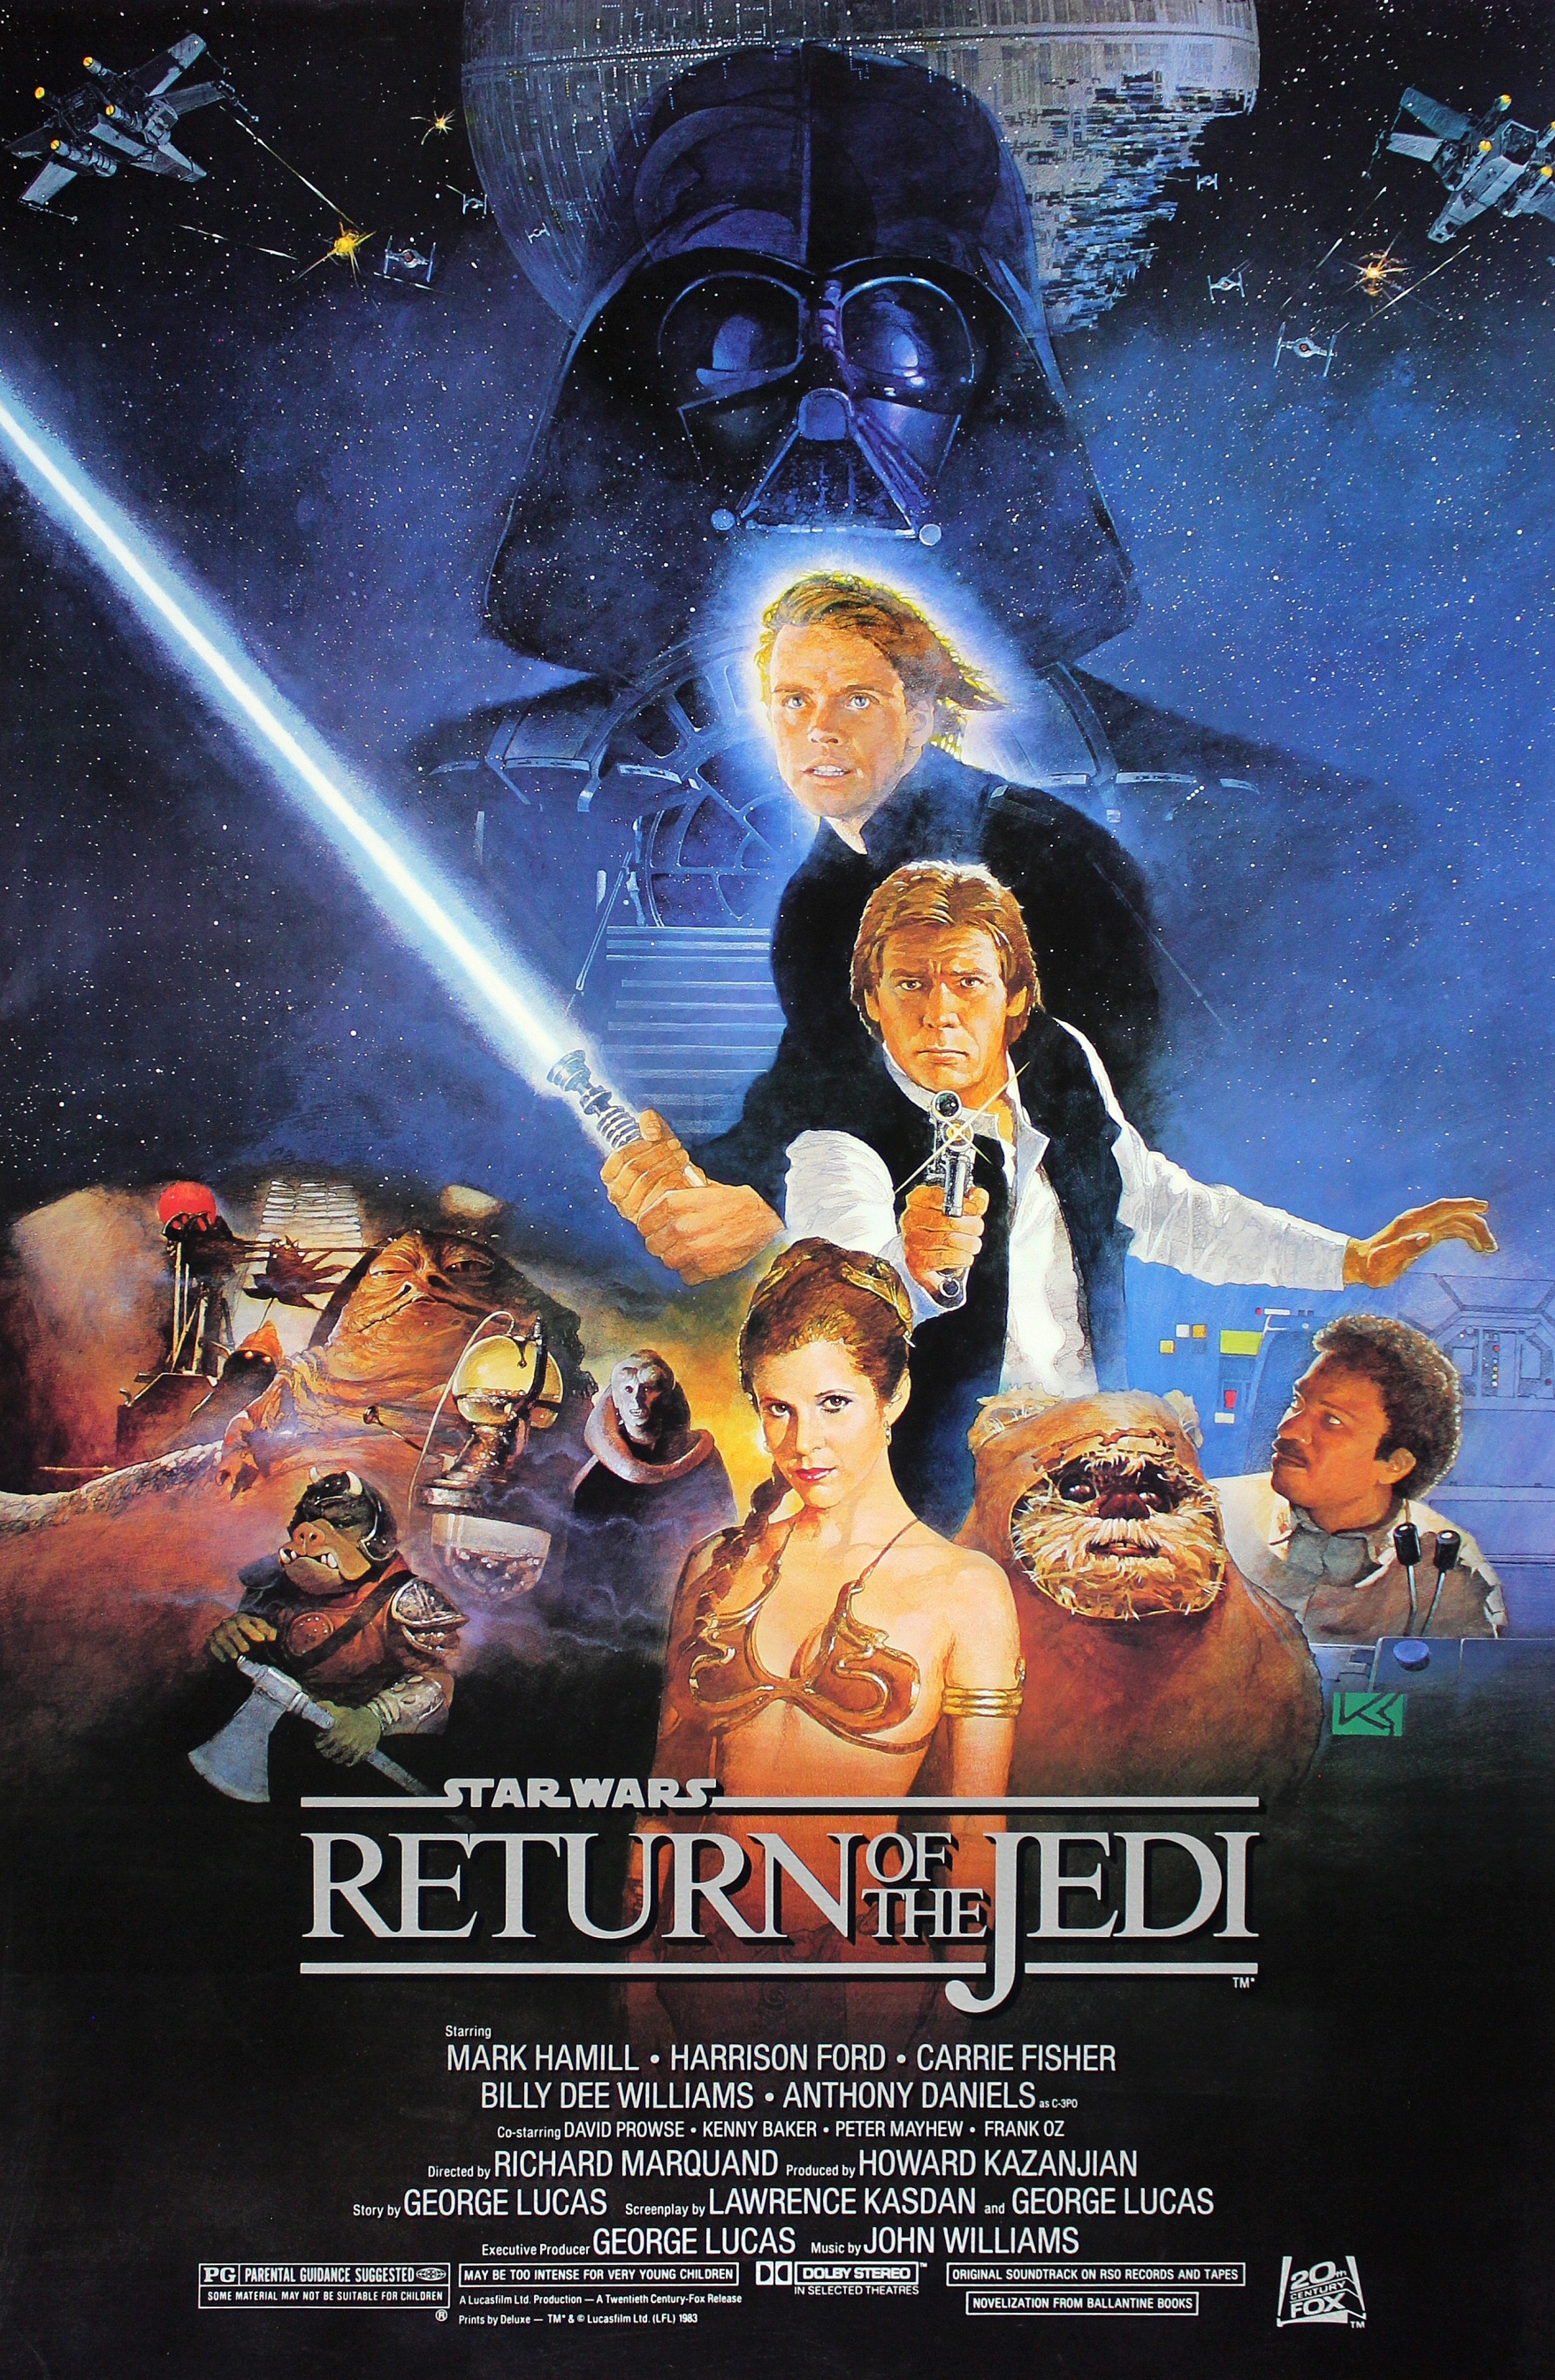 Star Wars Episode VI: Return of the Jedi - Wookieepedia, the Star ...